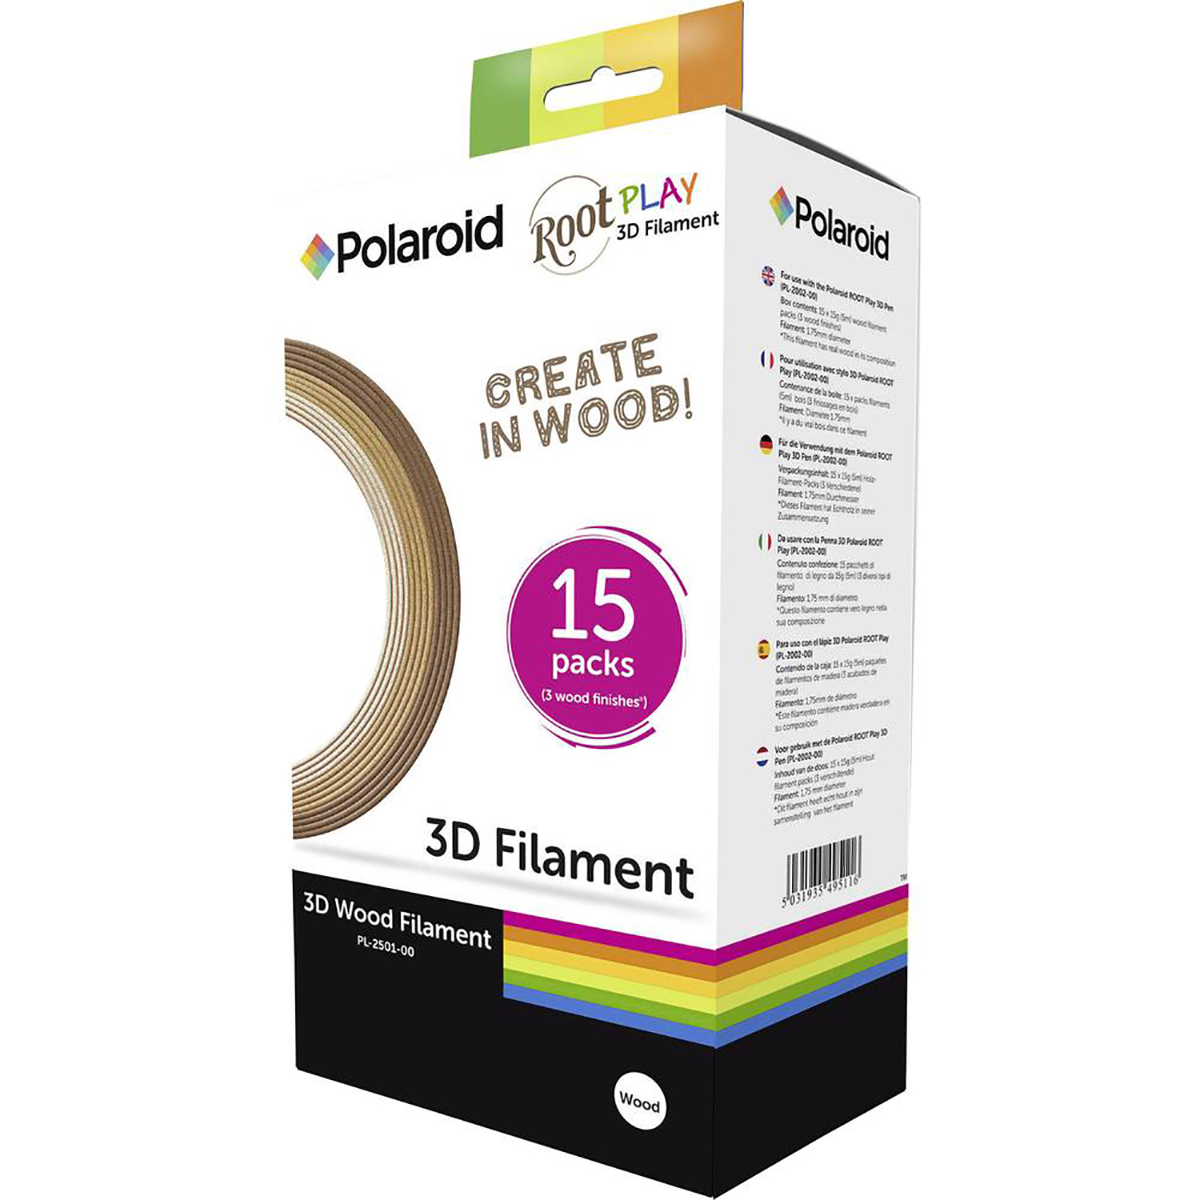 Polaroid 3D Root Pen Filament - Box of 15